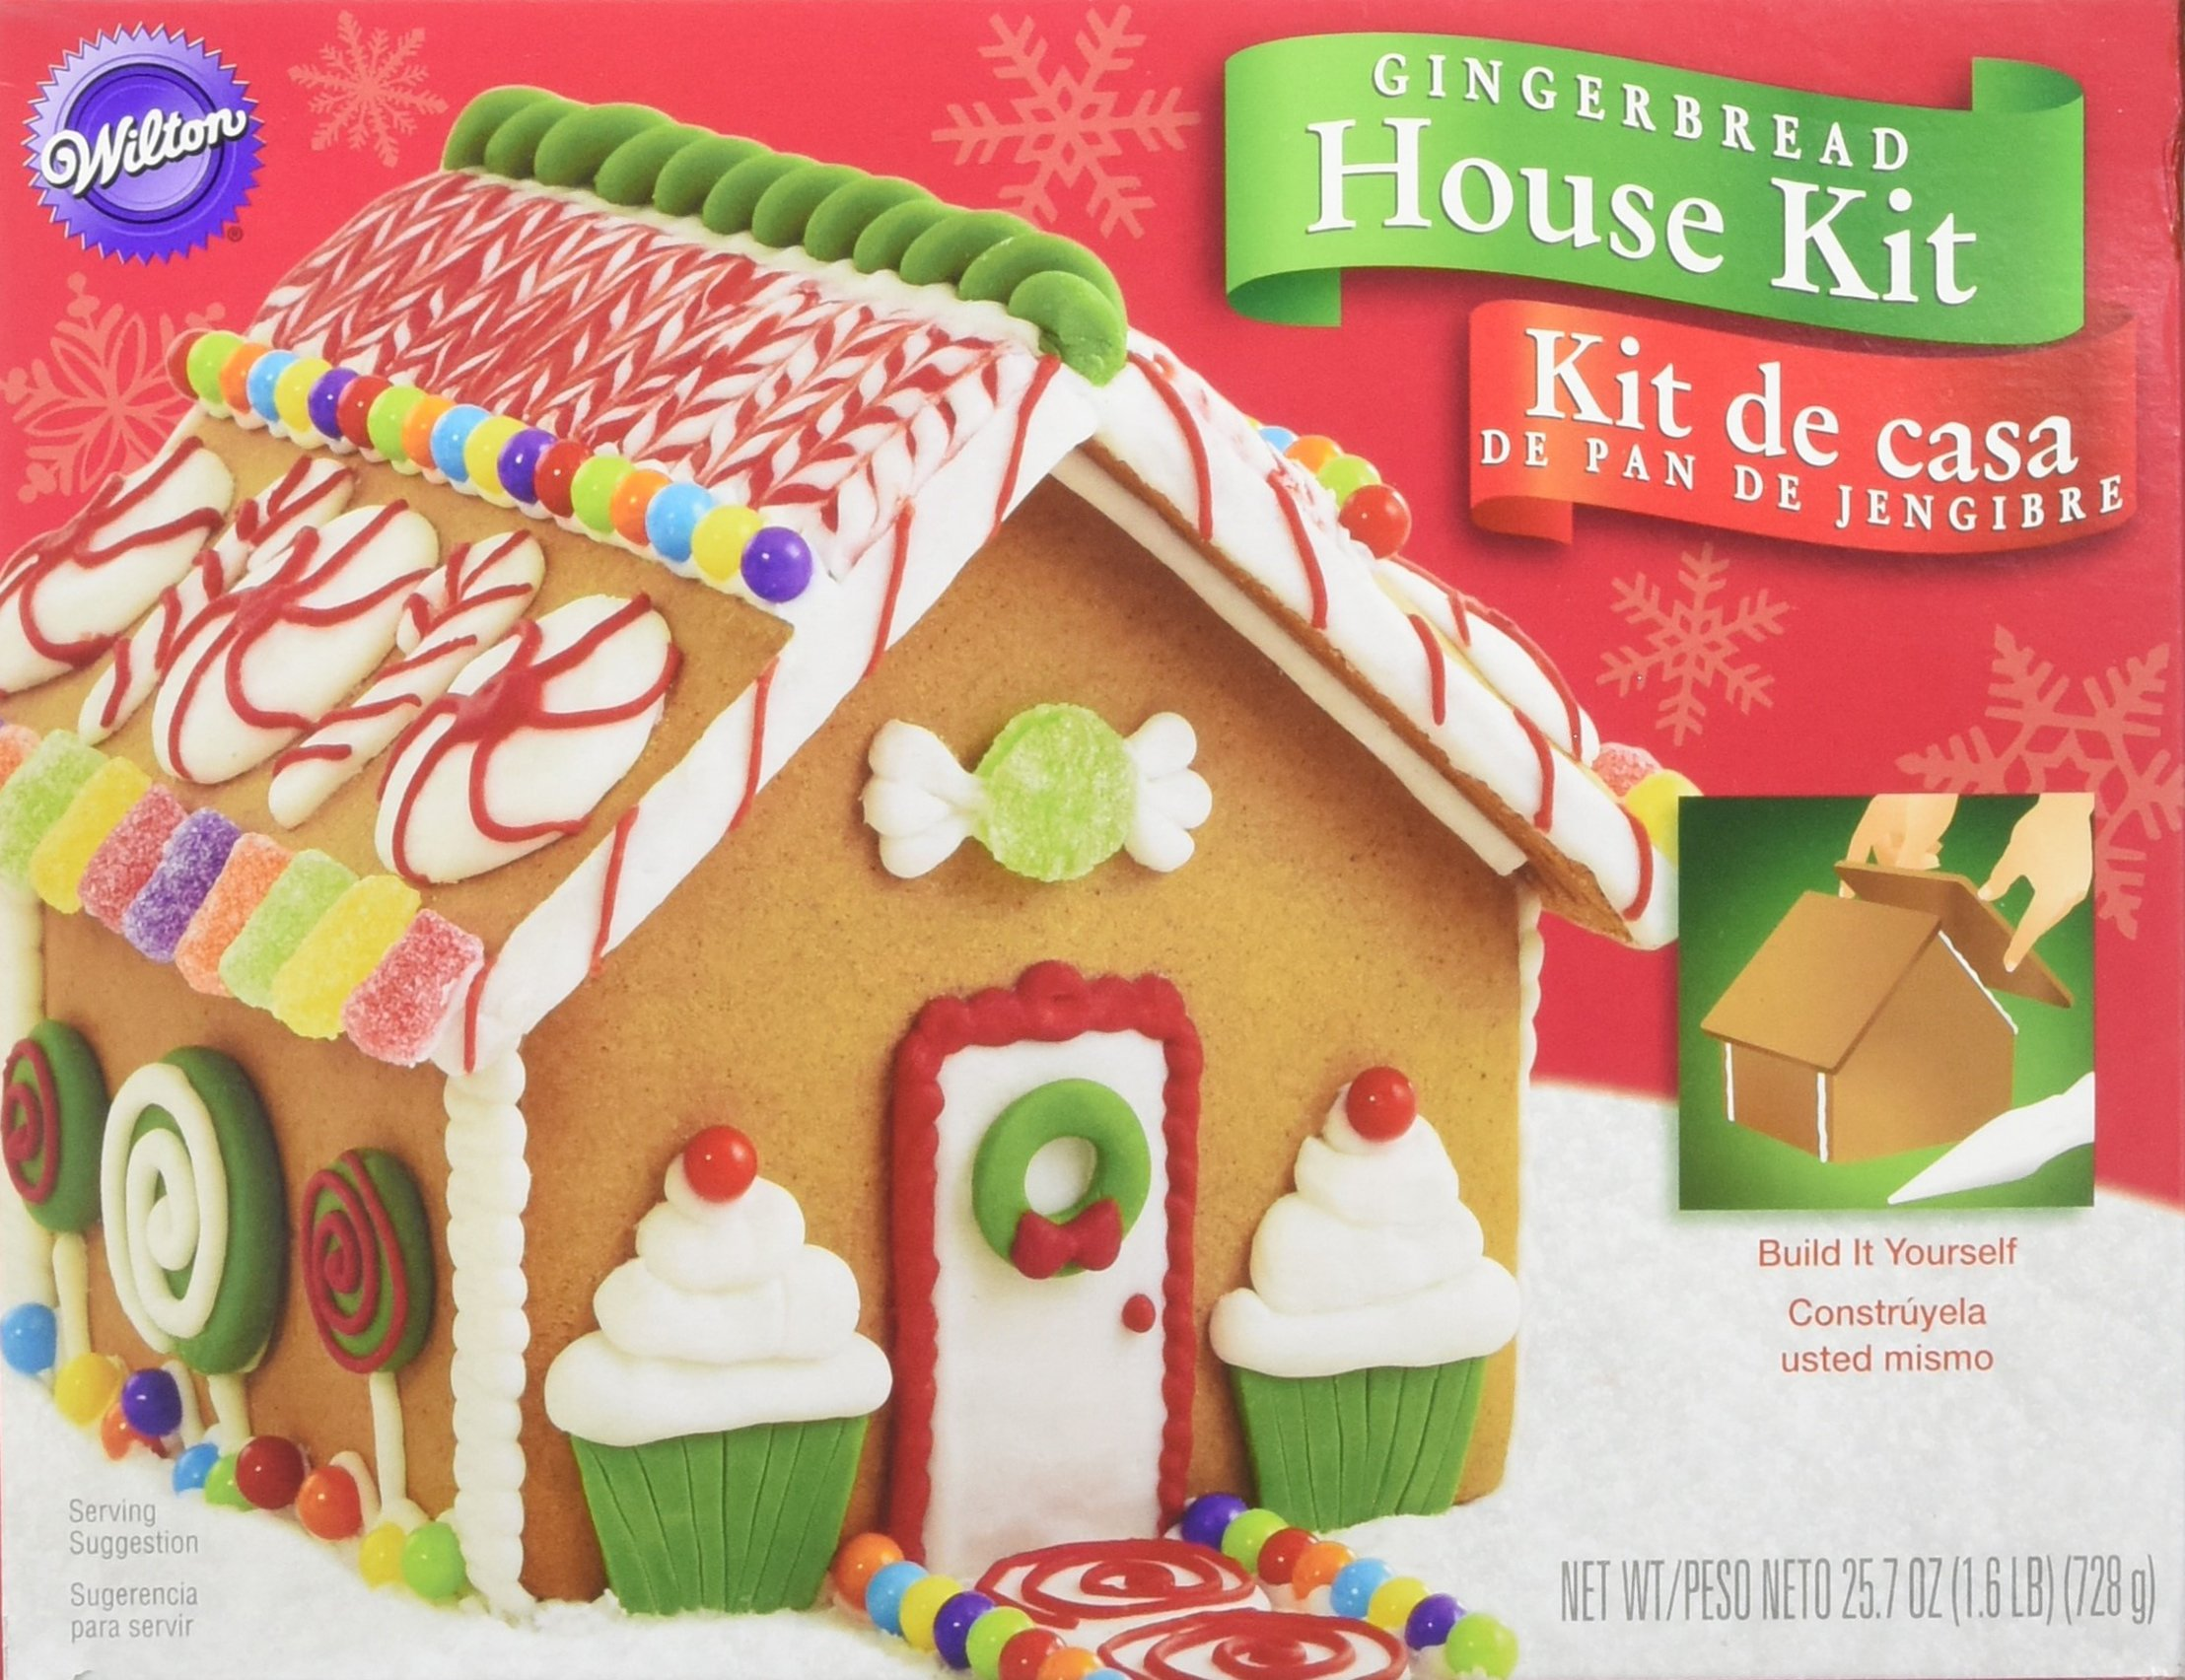 Cubicle Decorating Kits >> Amazon.com: Create-a-treat Gingerbread House Kit, 2.20 lb